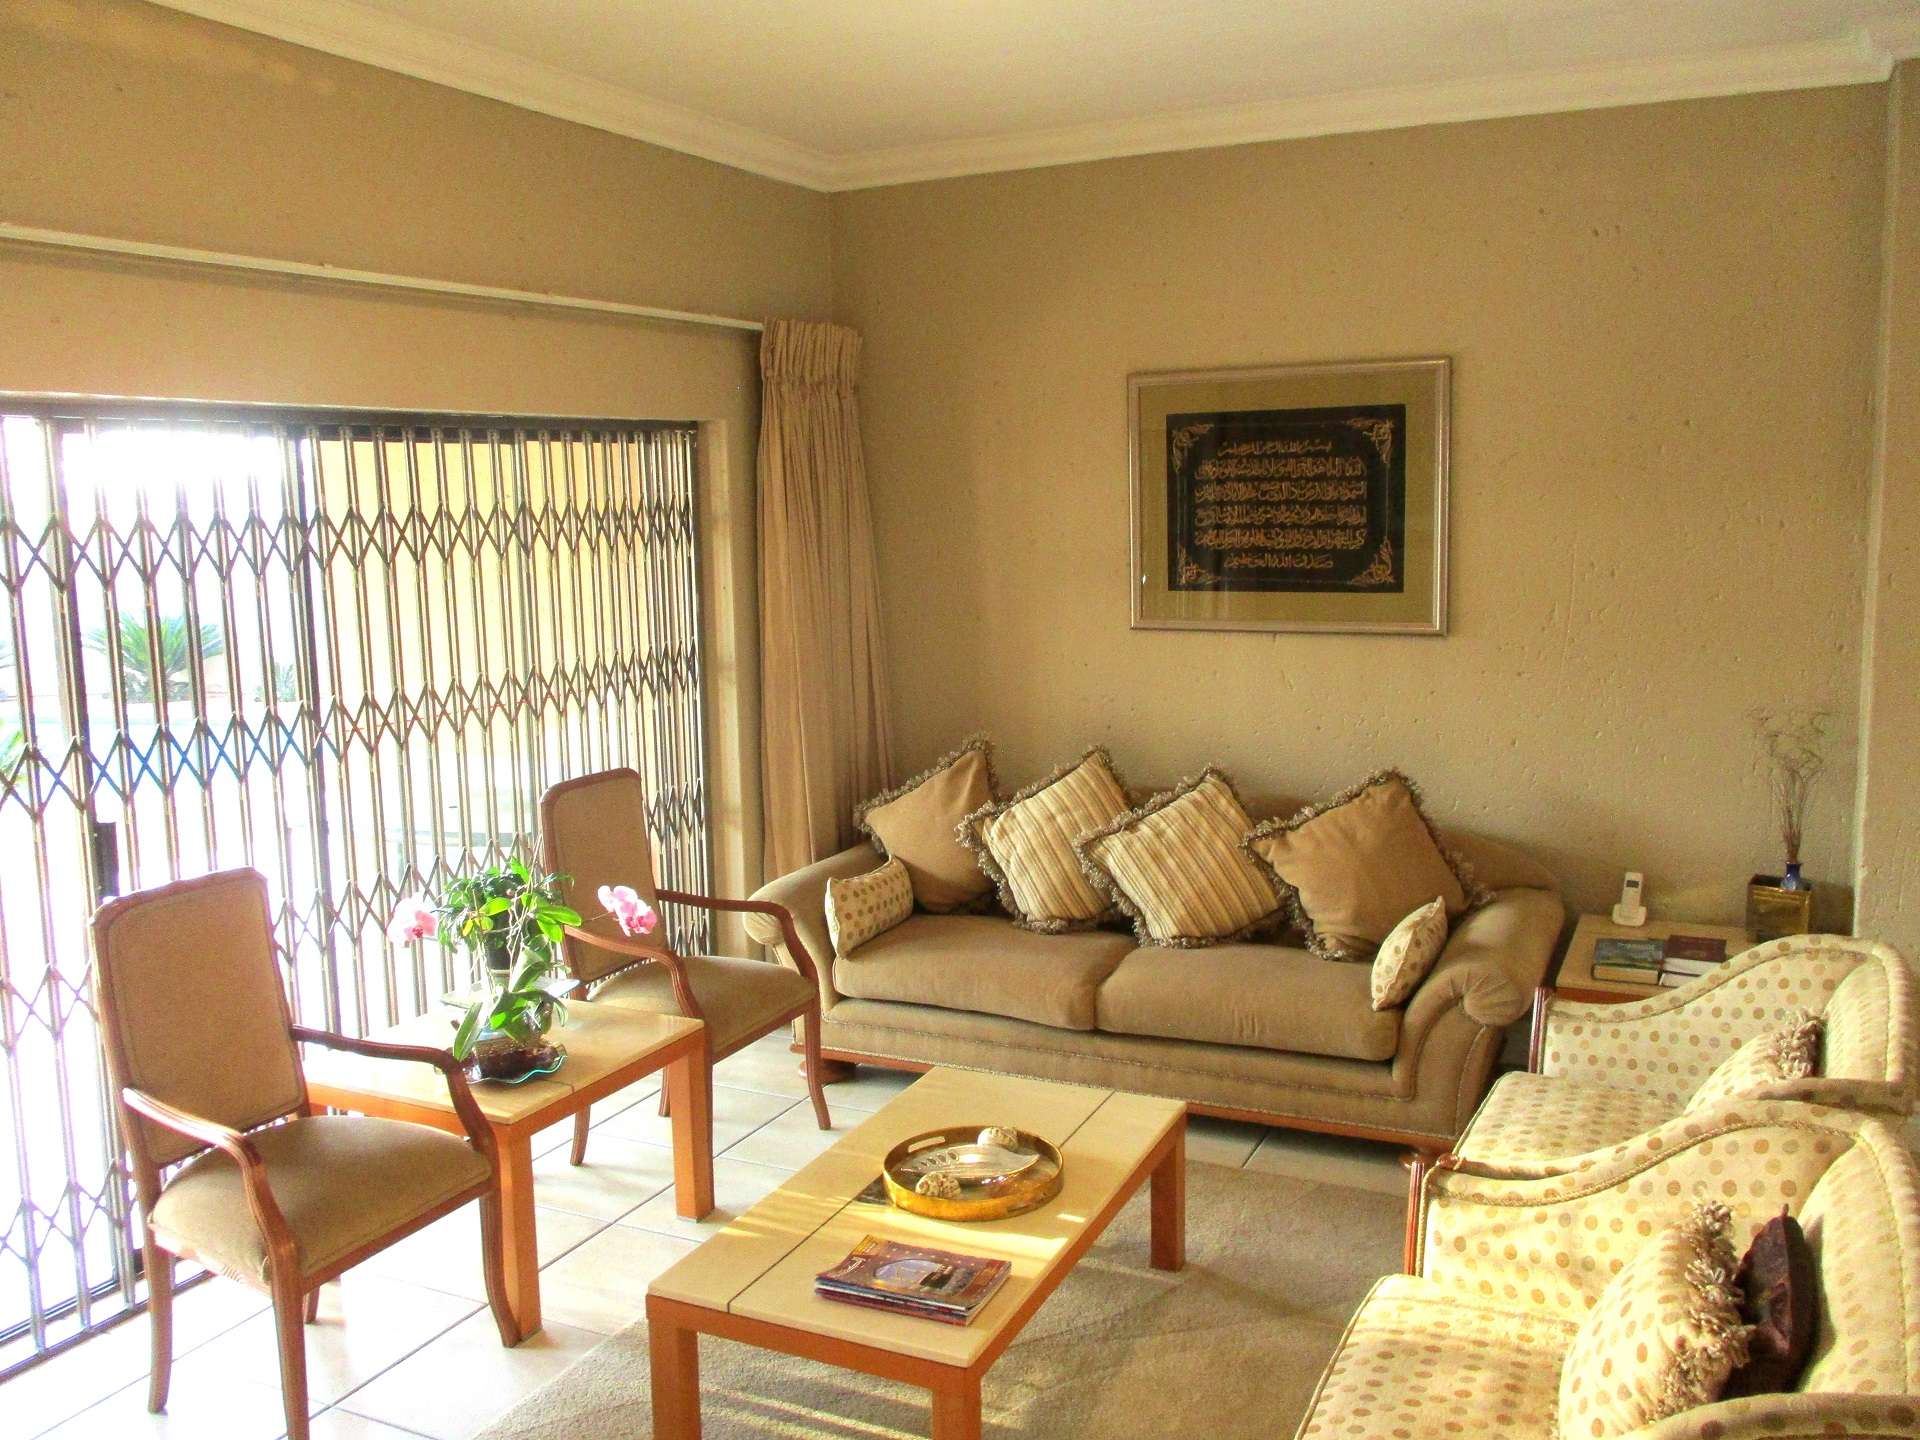 R2 950 000 00 Lenasia Ext 1 Just Homes Property For Sale In Lenasia